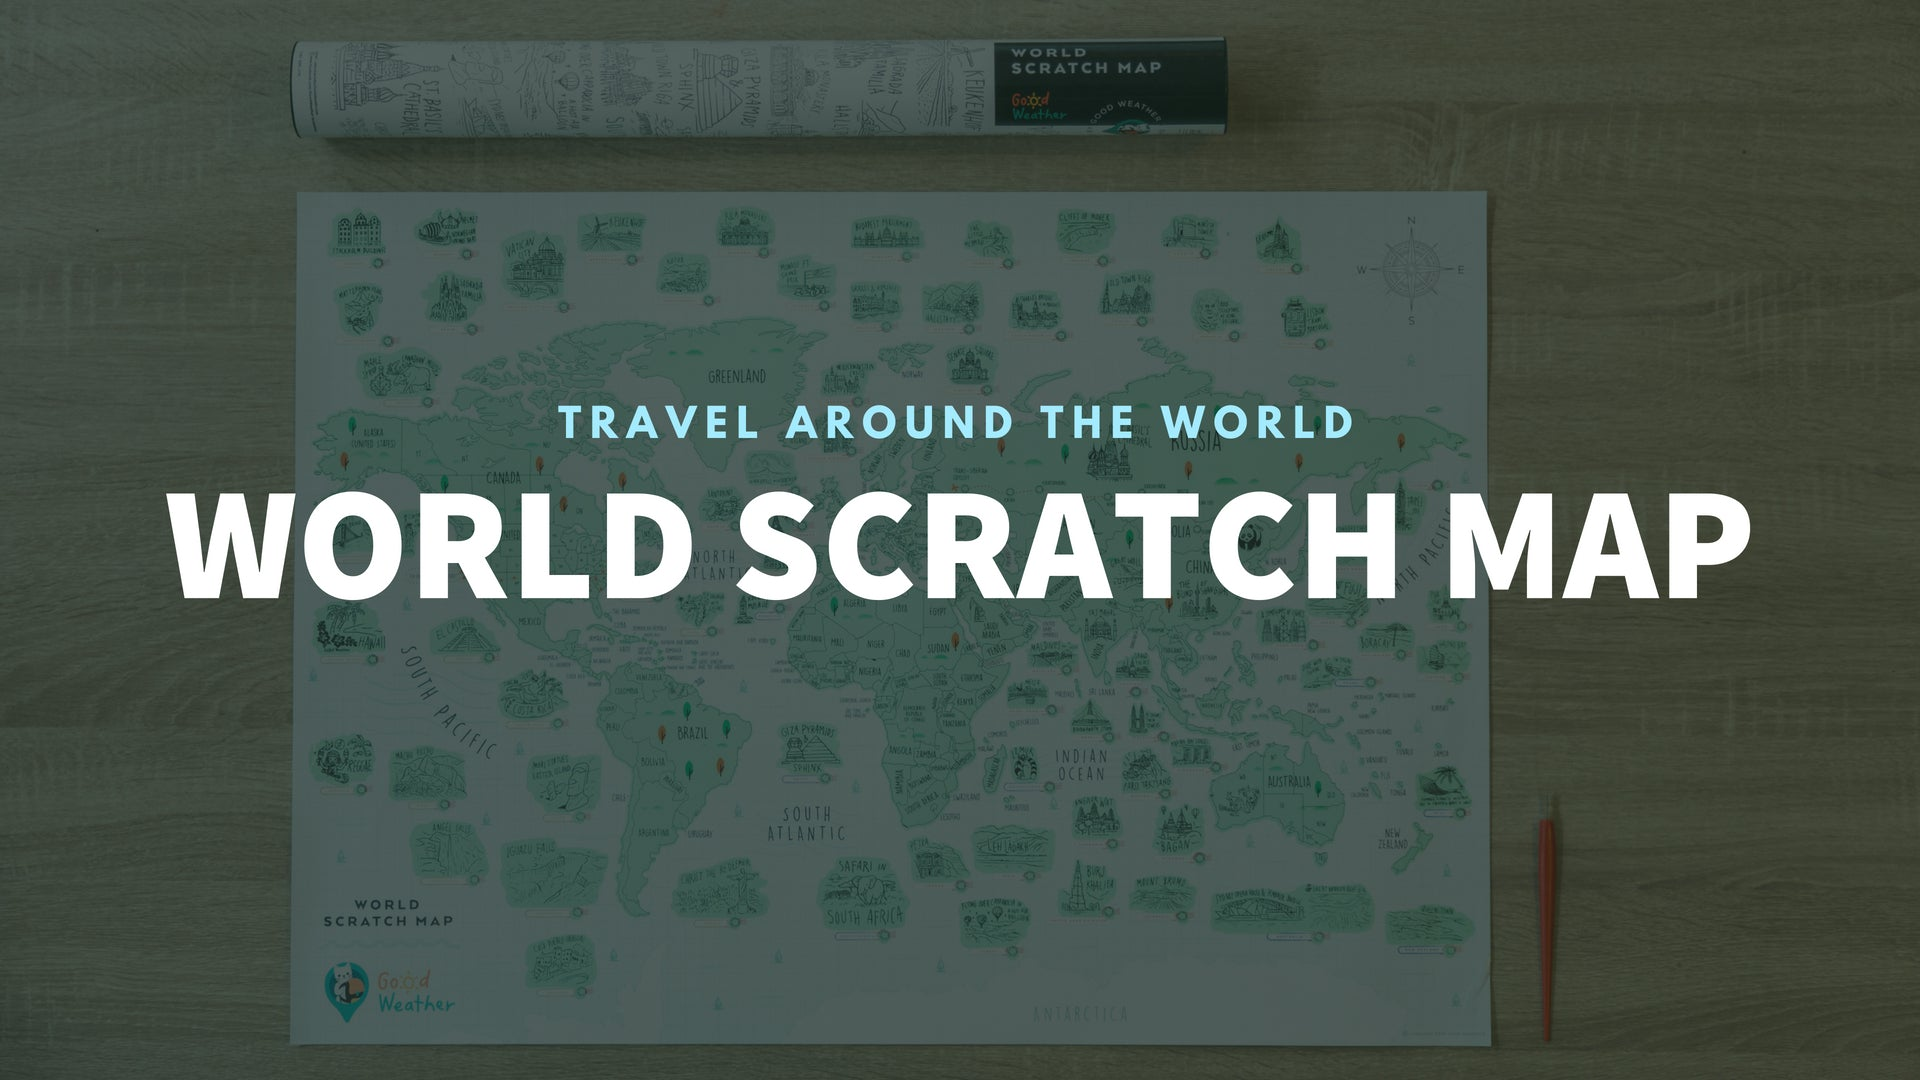 World scratch map - iMartCity 世界刮刮樂刮刮地圖 travel map world map deluxe map